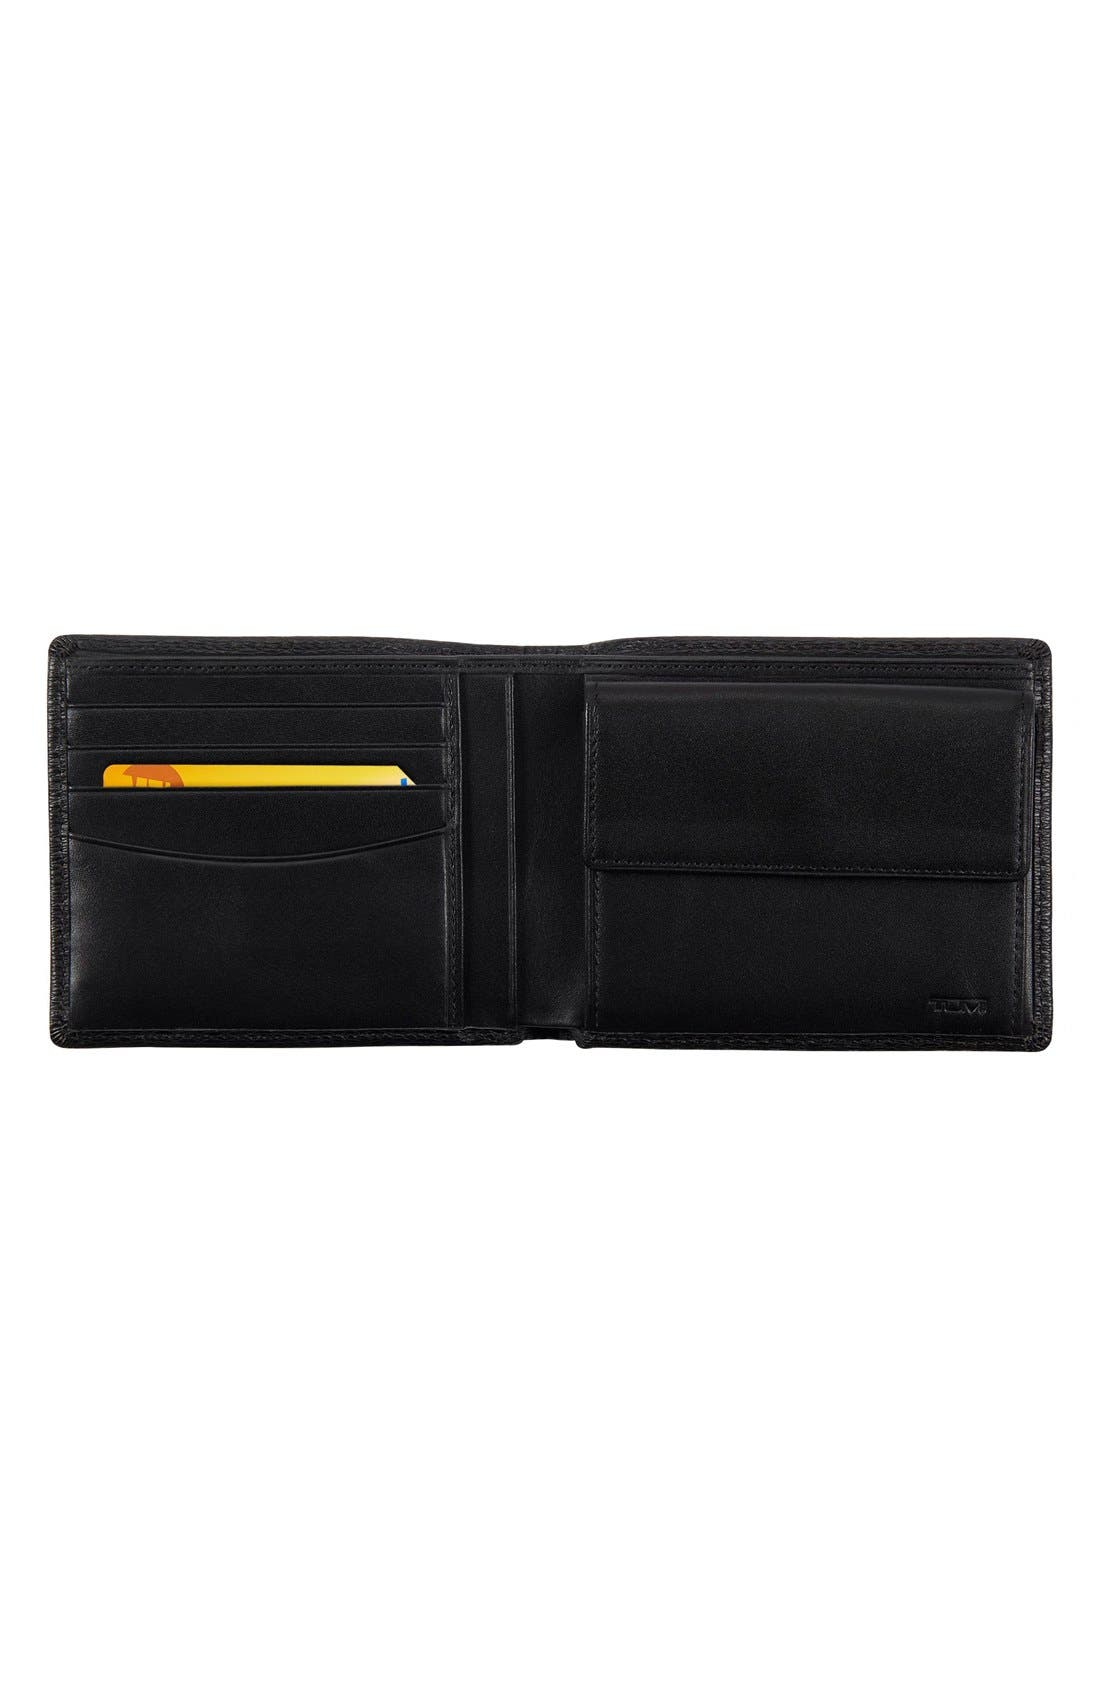 Alternate Image 2  - Tumi 'Monaco - Global' Wallet with Coin Pocket